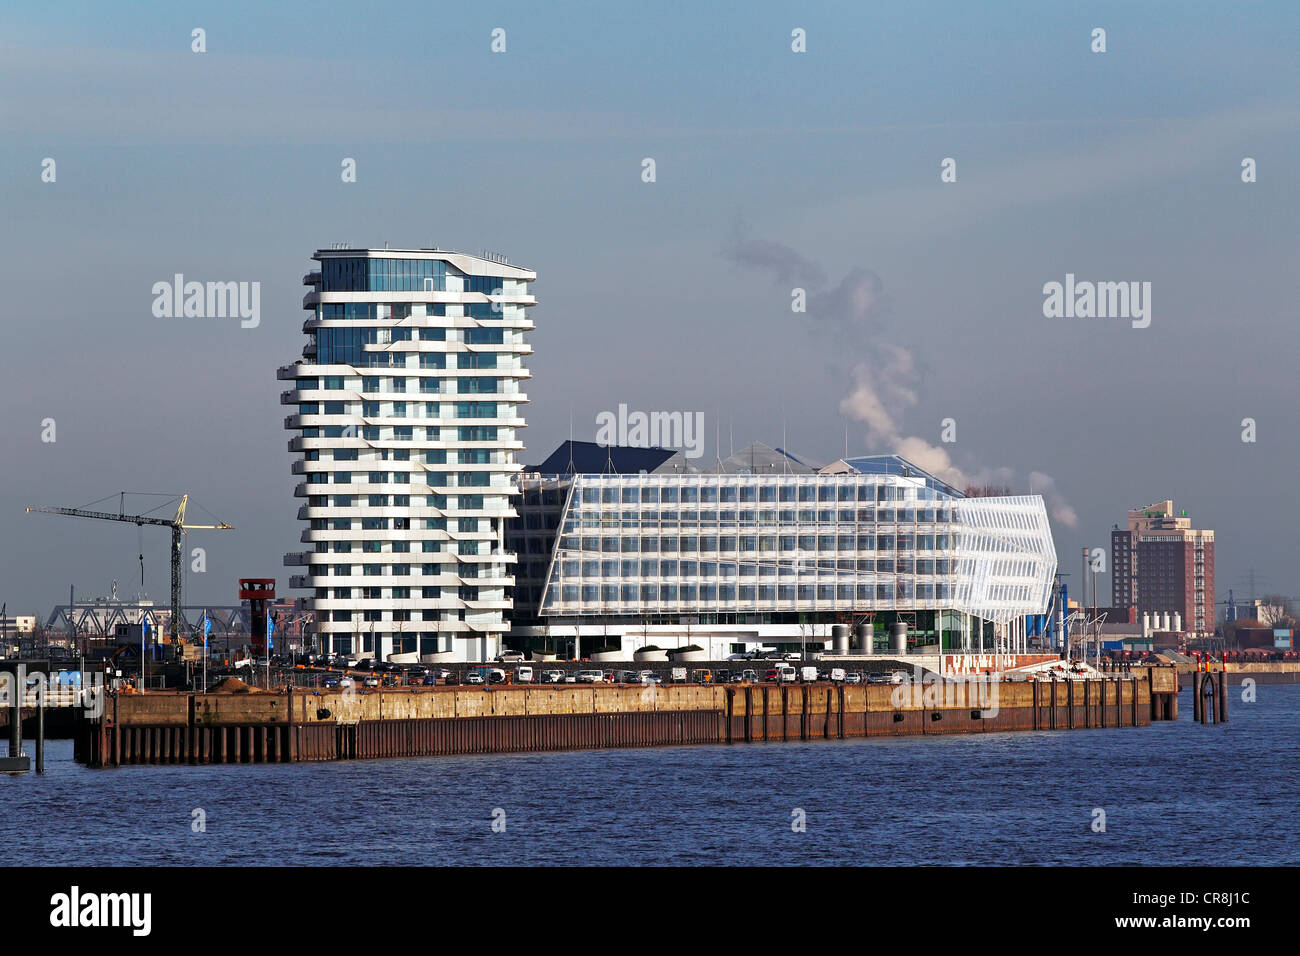 Modern architecture, Marco Polo Tower and Unilever Centre in HafenCity, Port of Hamburg, Hanseatic City of Hamburg Stock Photo